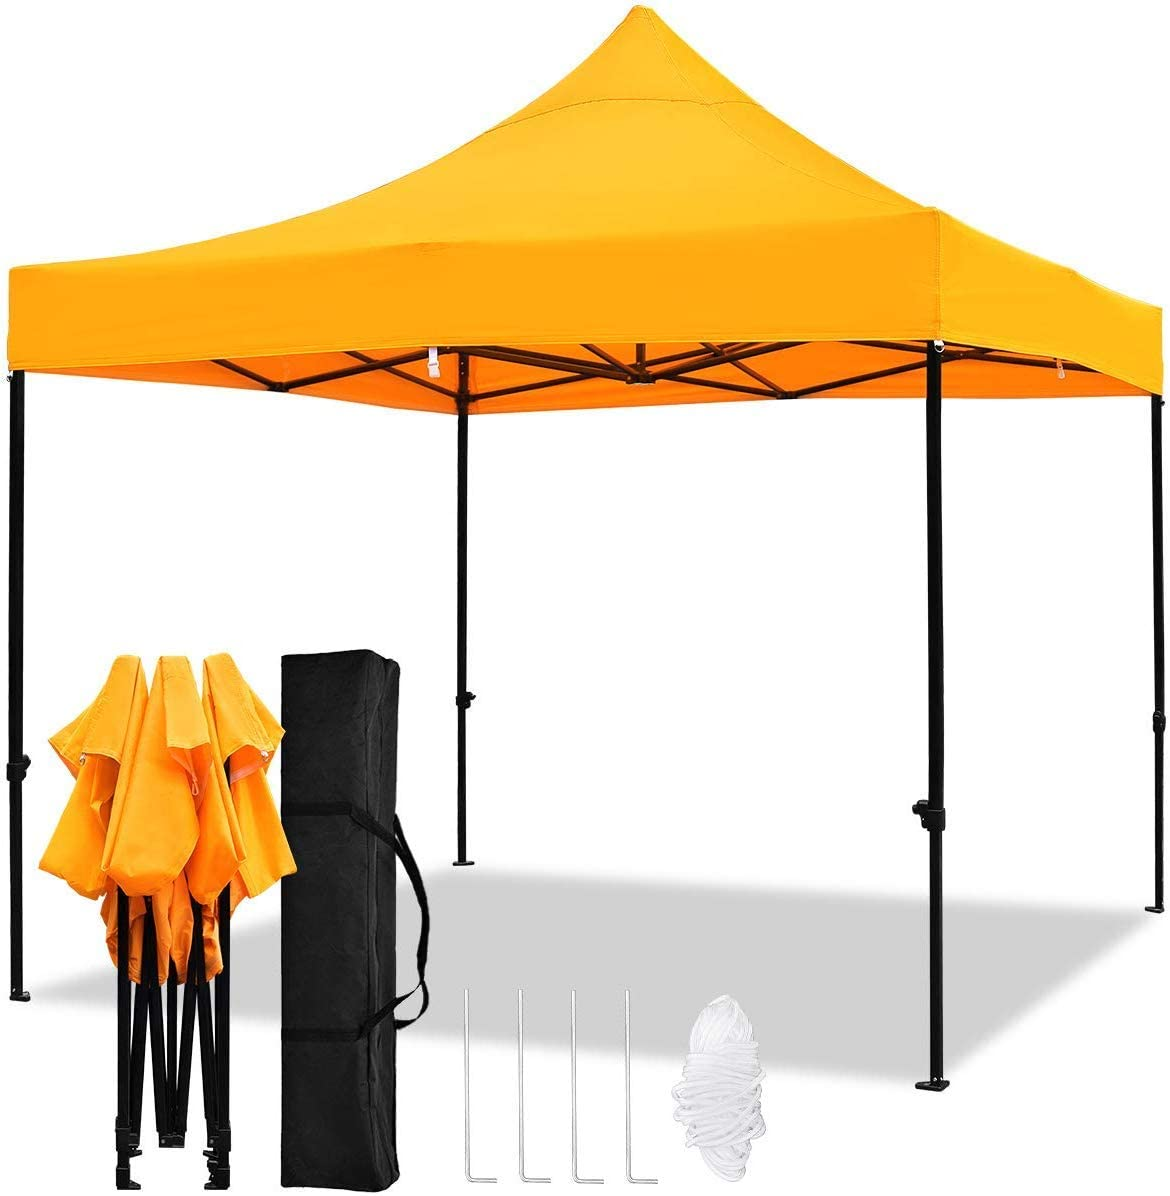 kdgarden 10 x10 Outdoor Easy Pop Up Canopy with 420D Waterproof and UV-Treated Top, Portable Commercial Instant Shelter with Carrying Bag, Orange